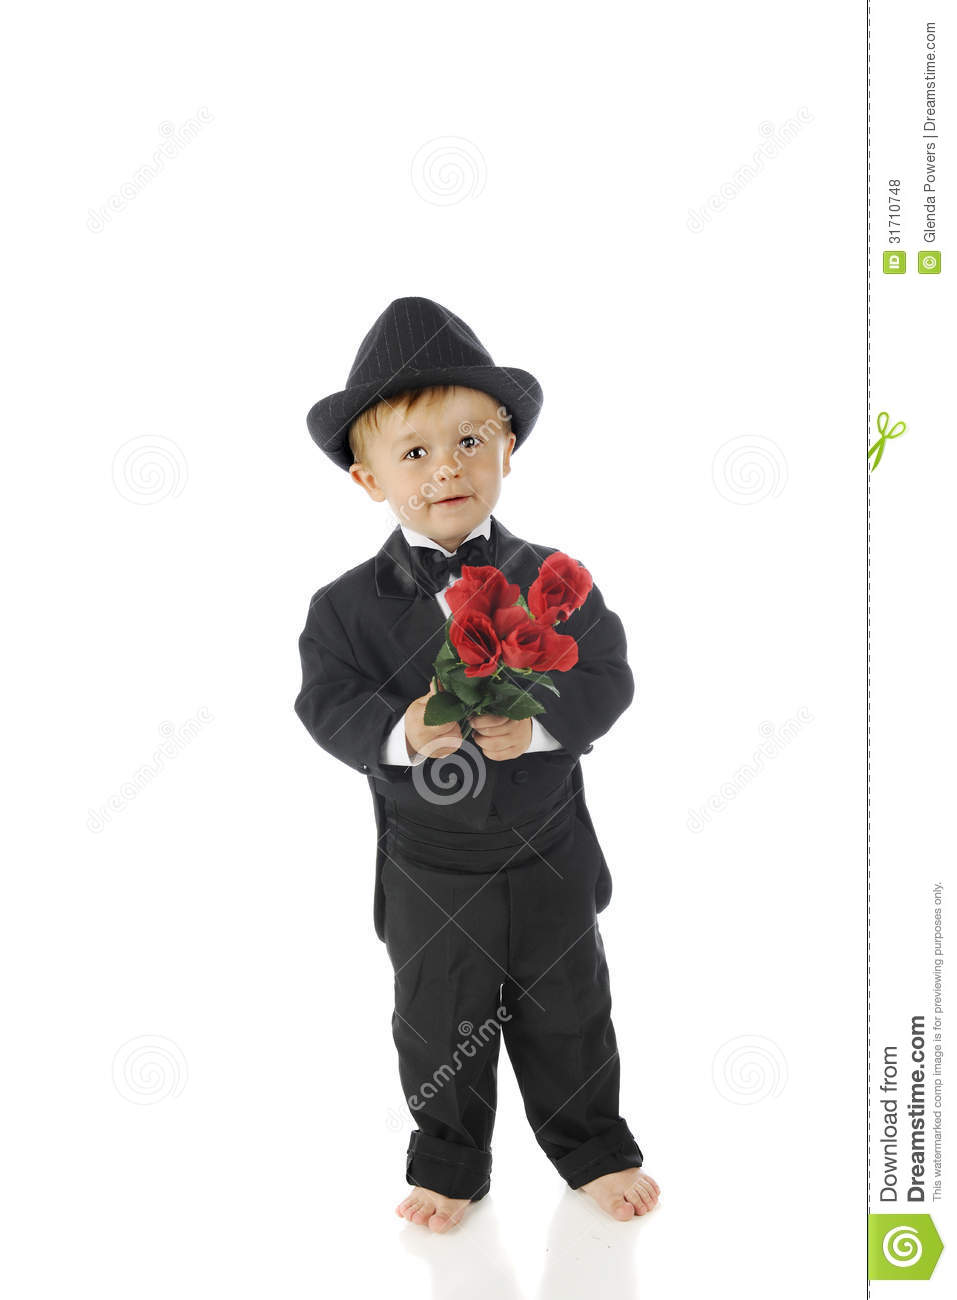 Tuxed Toddler With Roses Stock Photo Image Of Tuxedo